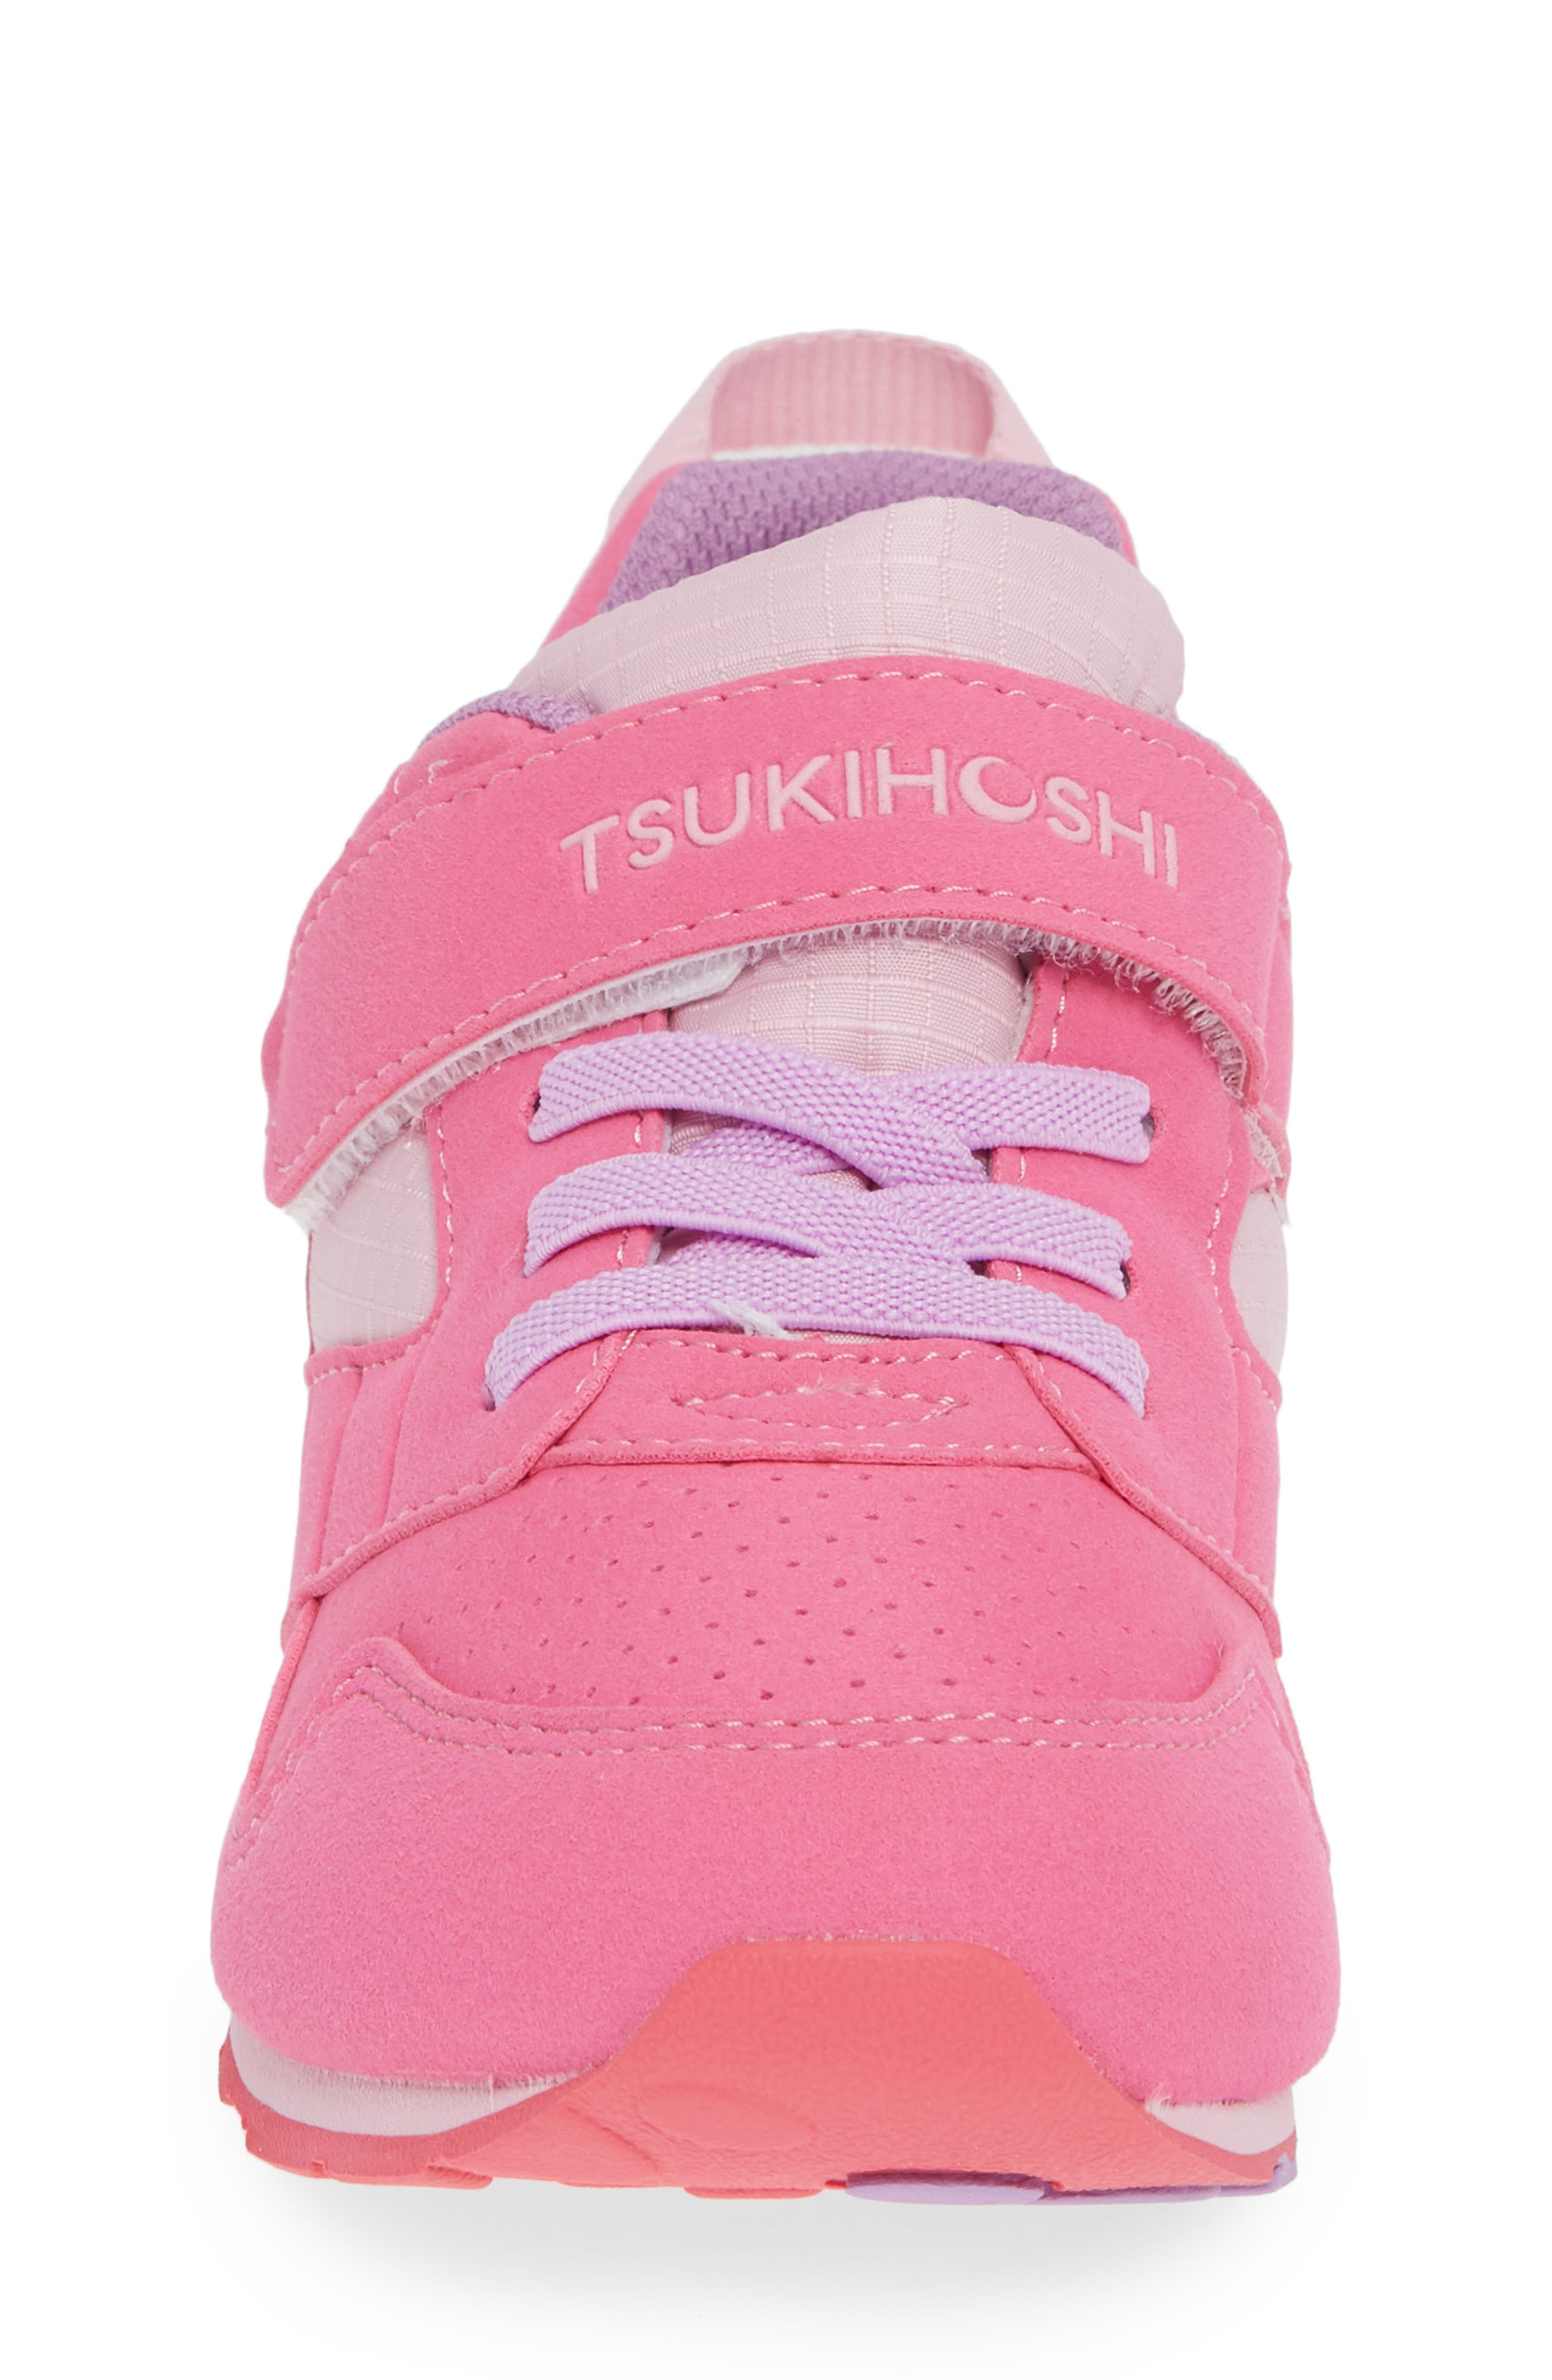 Racer Washable Sneaker,                             Alternate thumbnail 4, color,                             FUCHSIA/ PINK